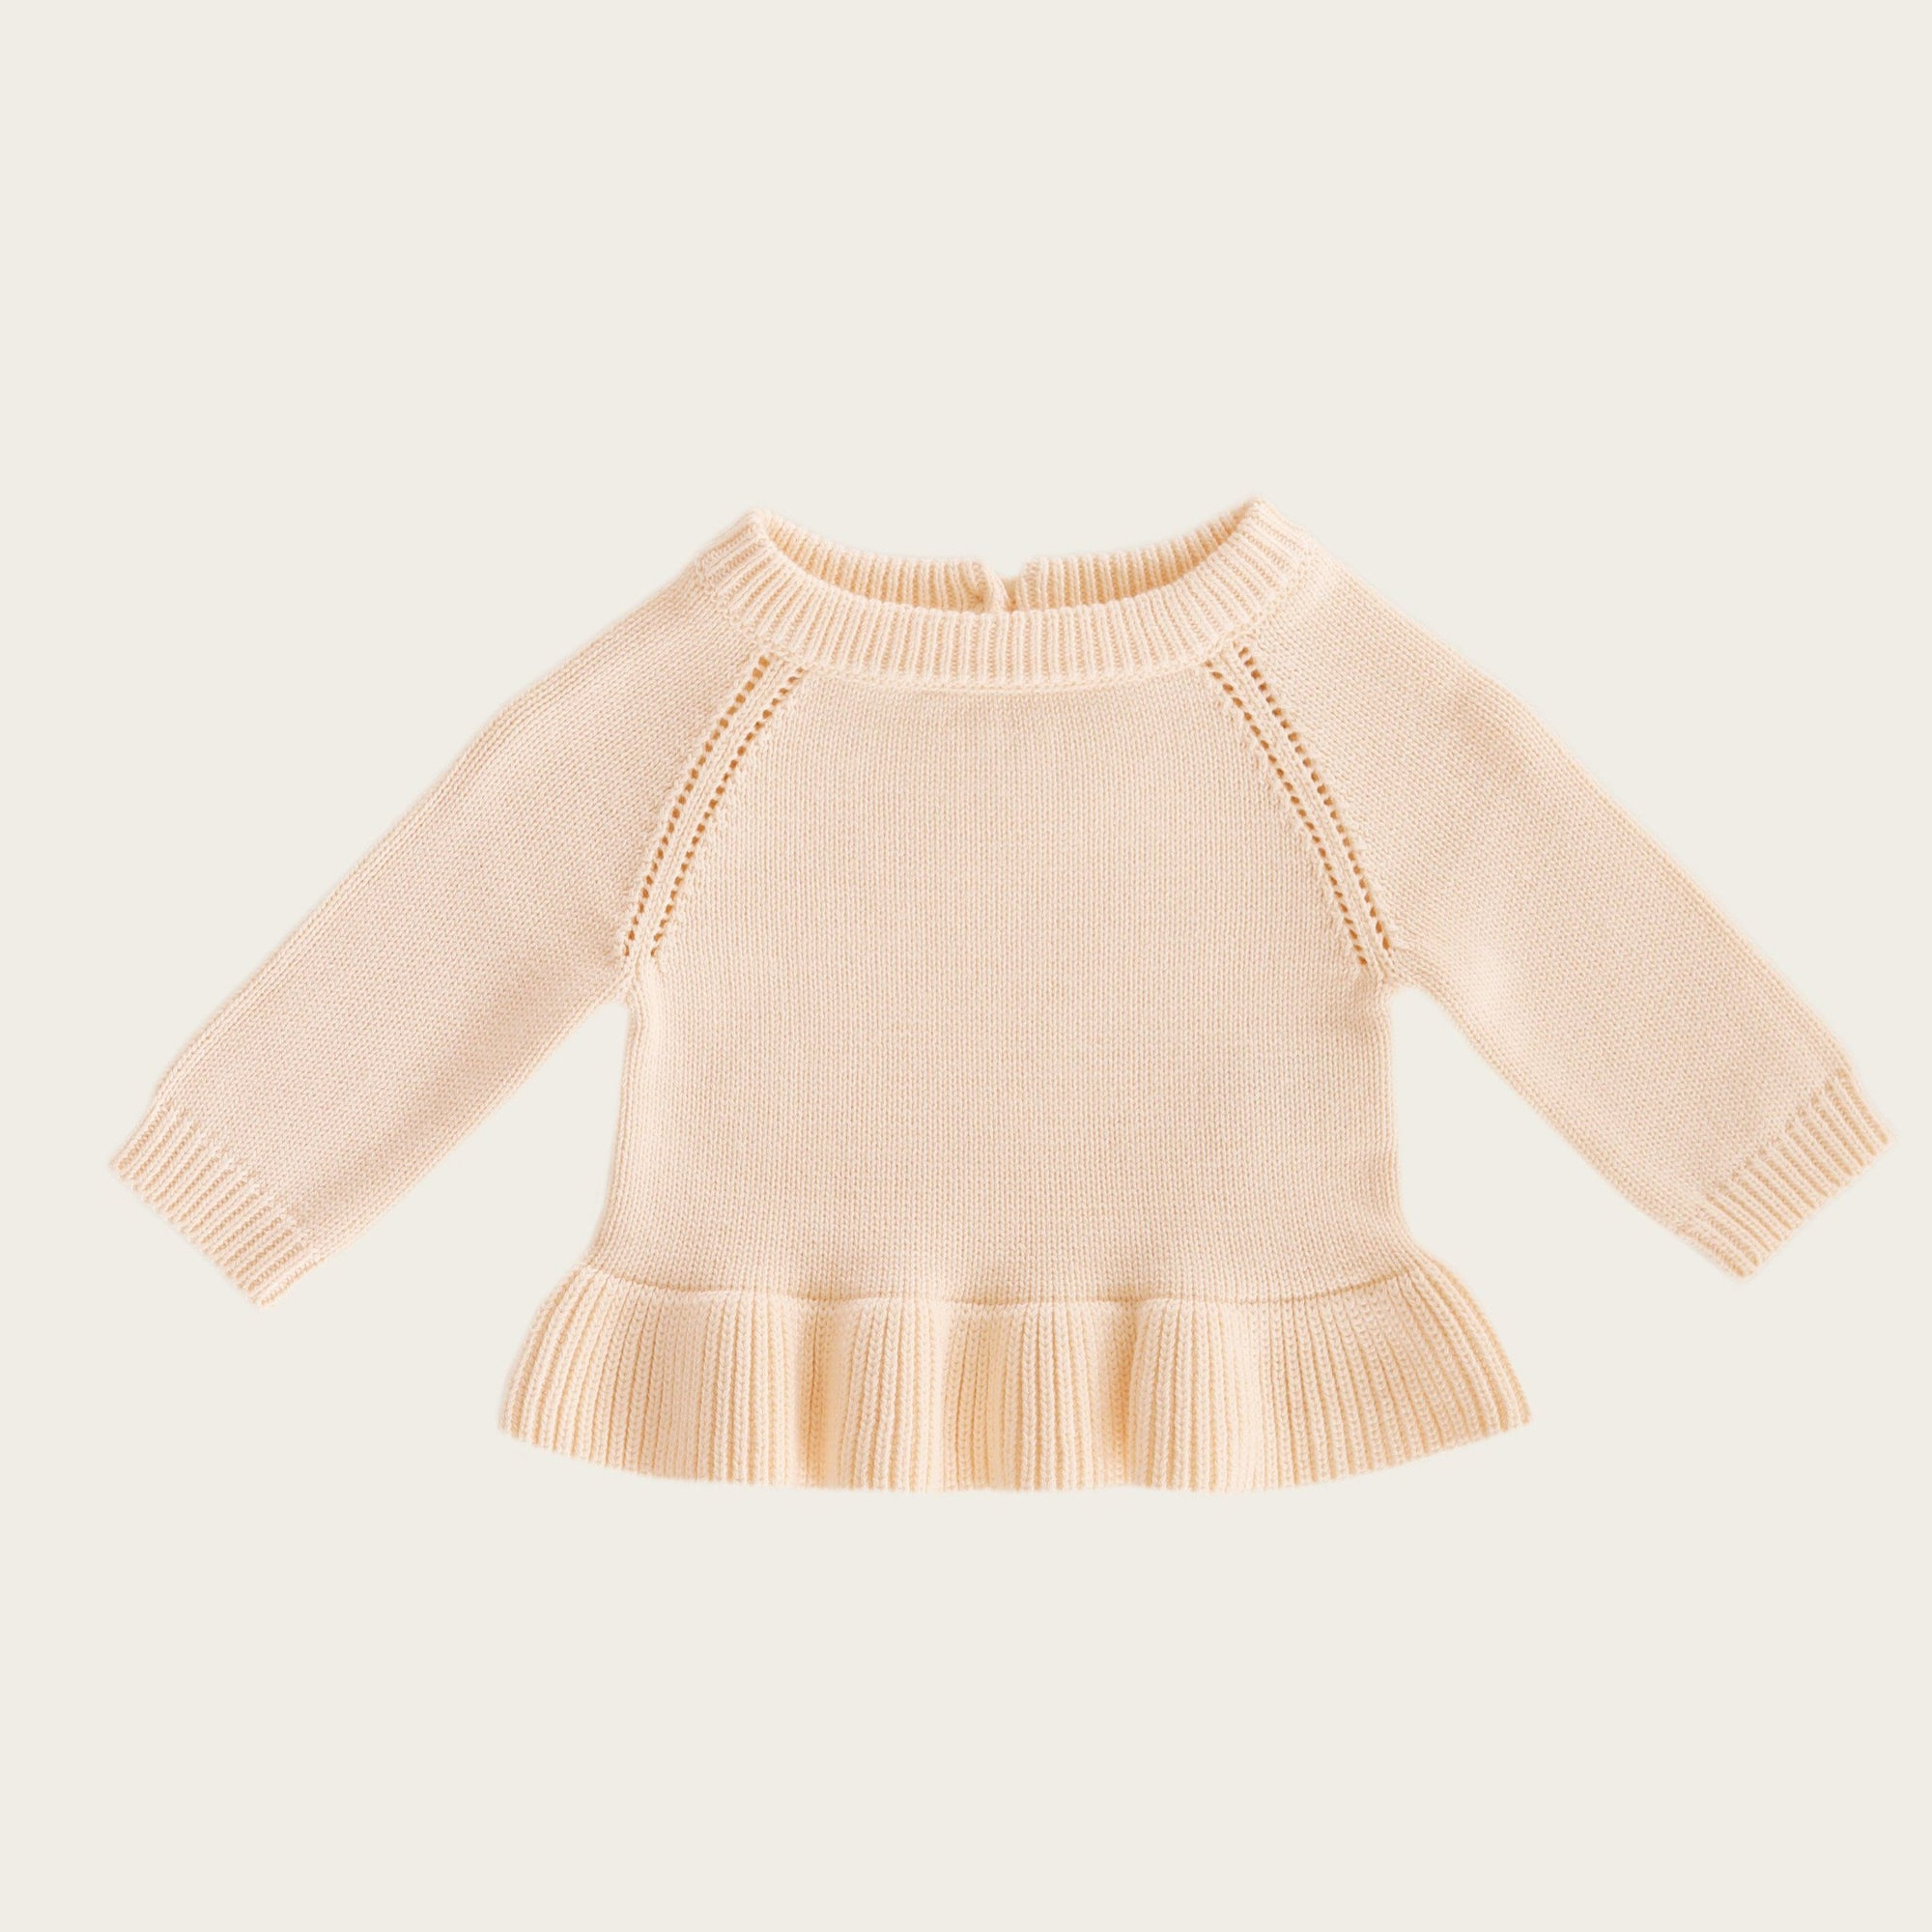 Ava Knit (Peachy)